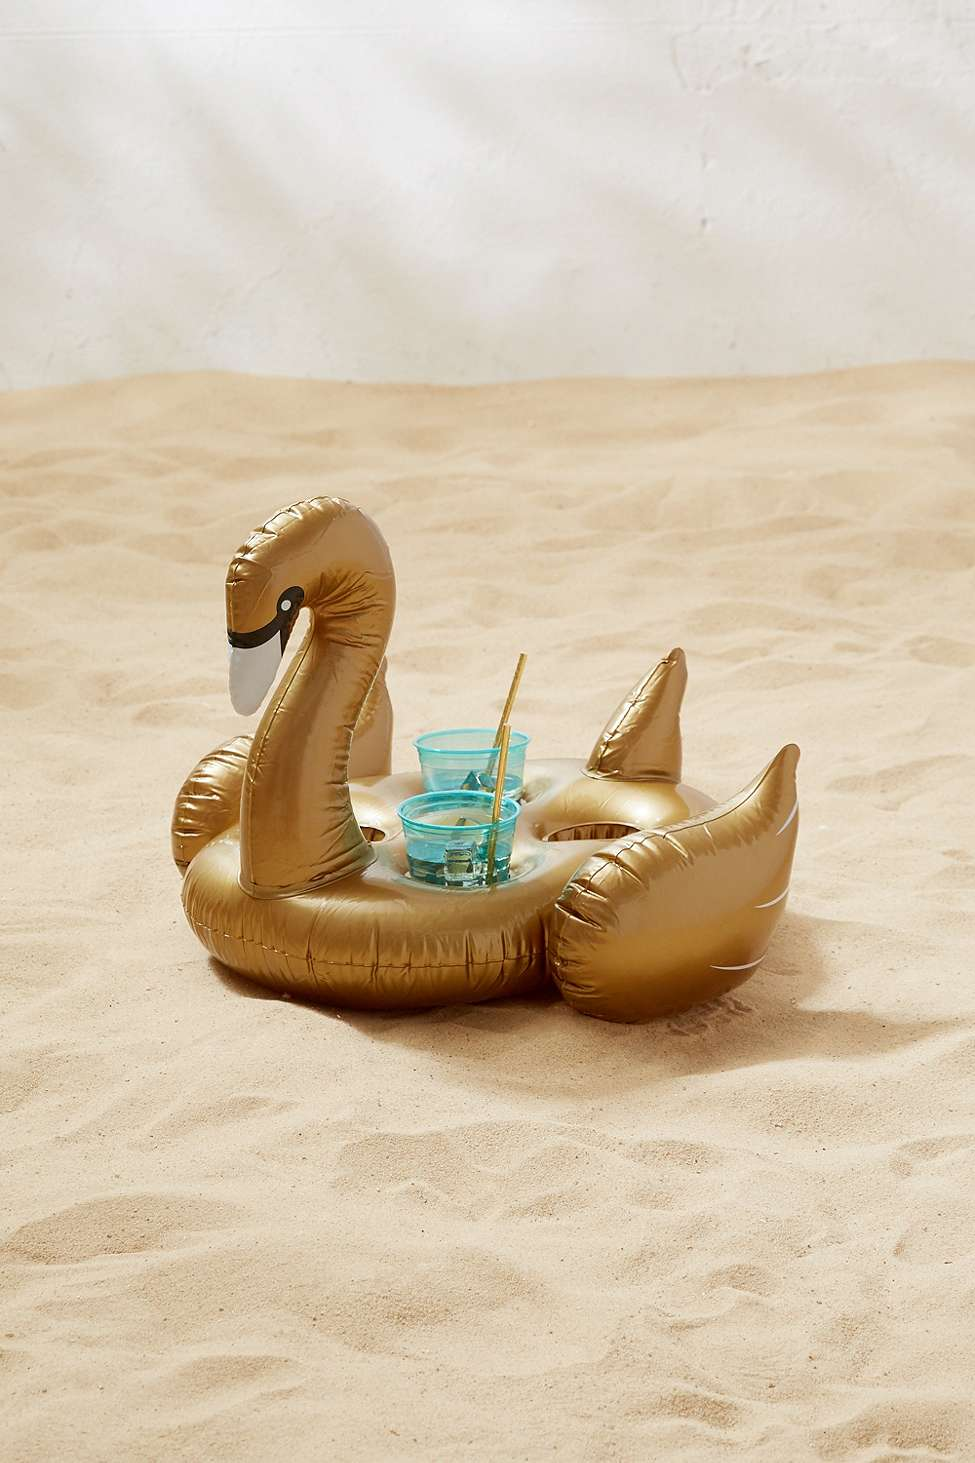 Slide View: 1: Sunnylife Golden Swan Pool Float Drink Holder